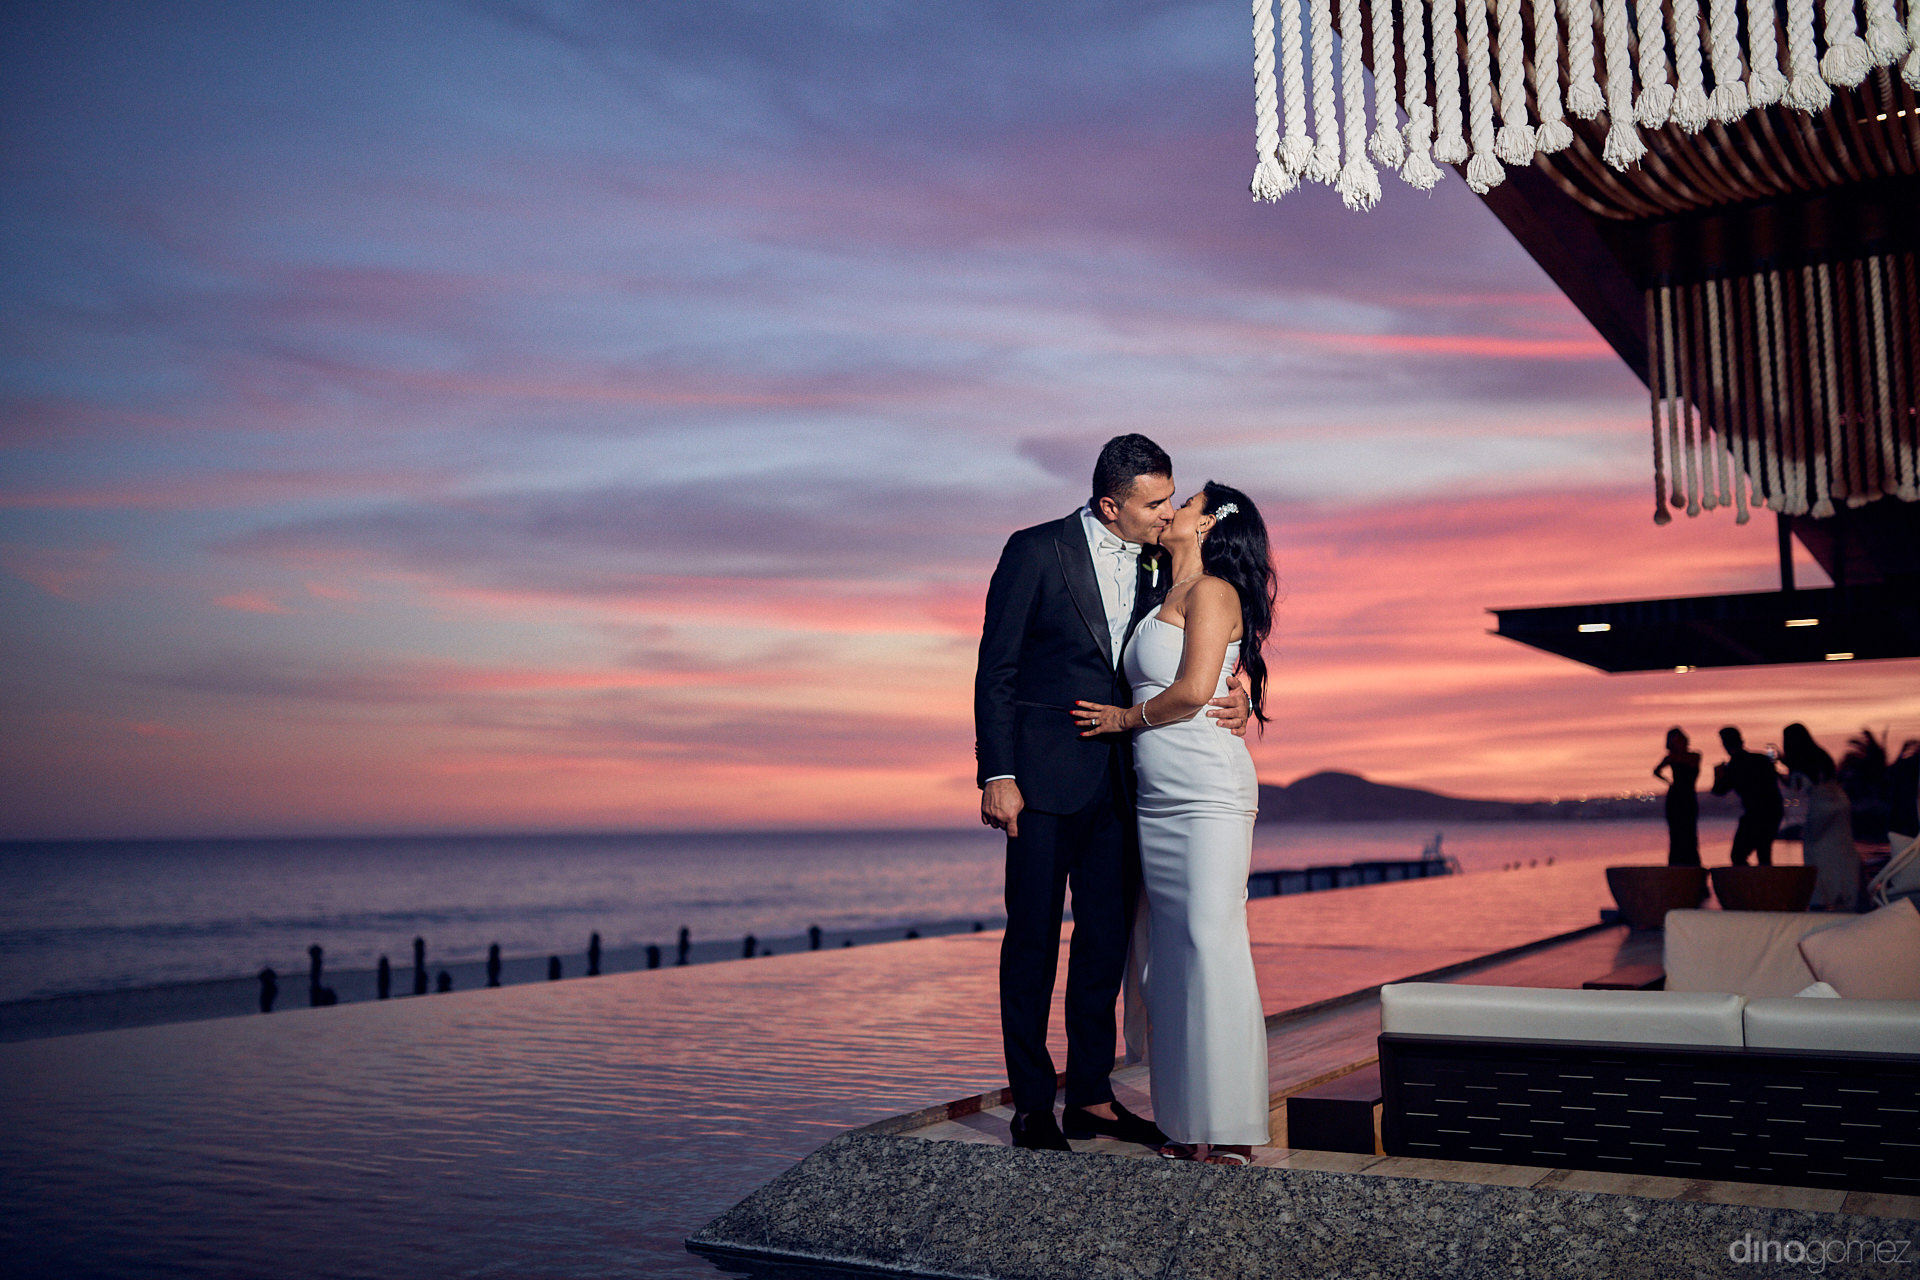 Cabo Wedding Photographers Specialized In Indian & Persian Weddings